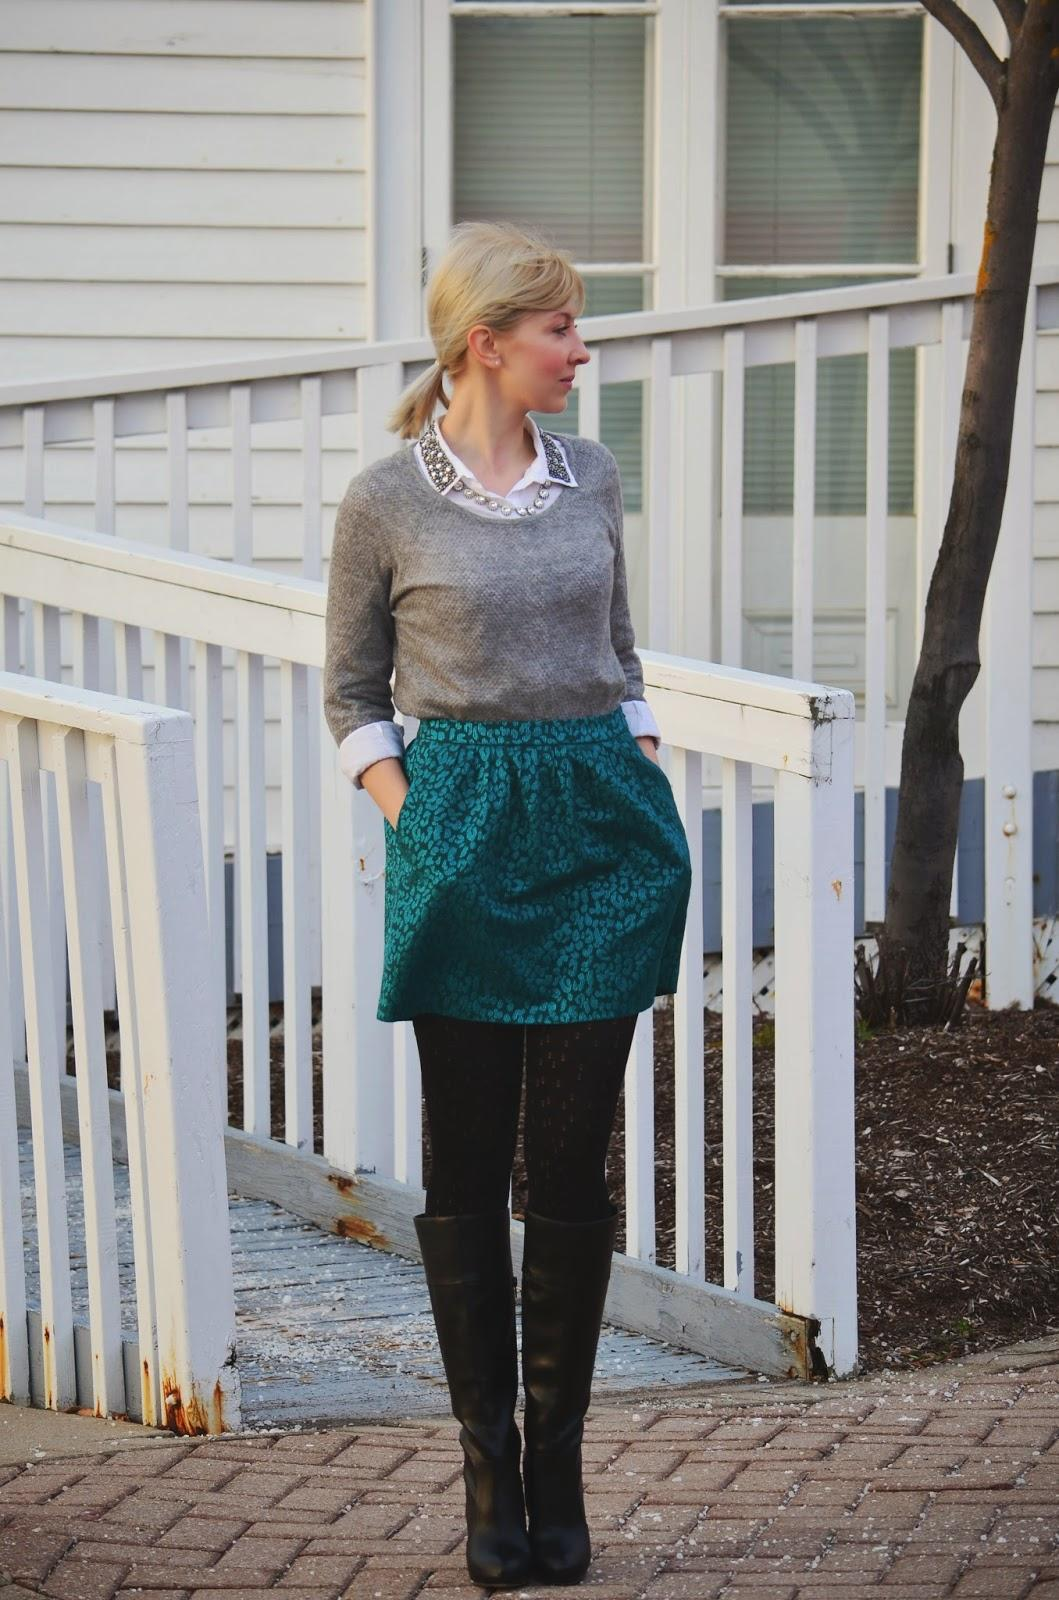 Style, casual Friday, preppy style, preppy, H&M, Banana Republic, Aldo, Old Navy, grey and green, green skirt style, grey sweater style, wool sweater, embroidered collar,